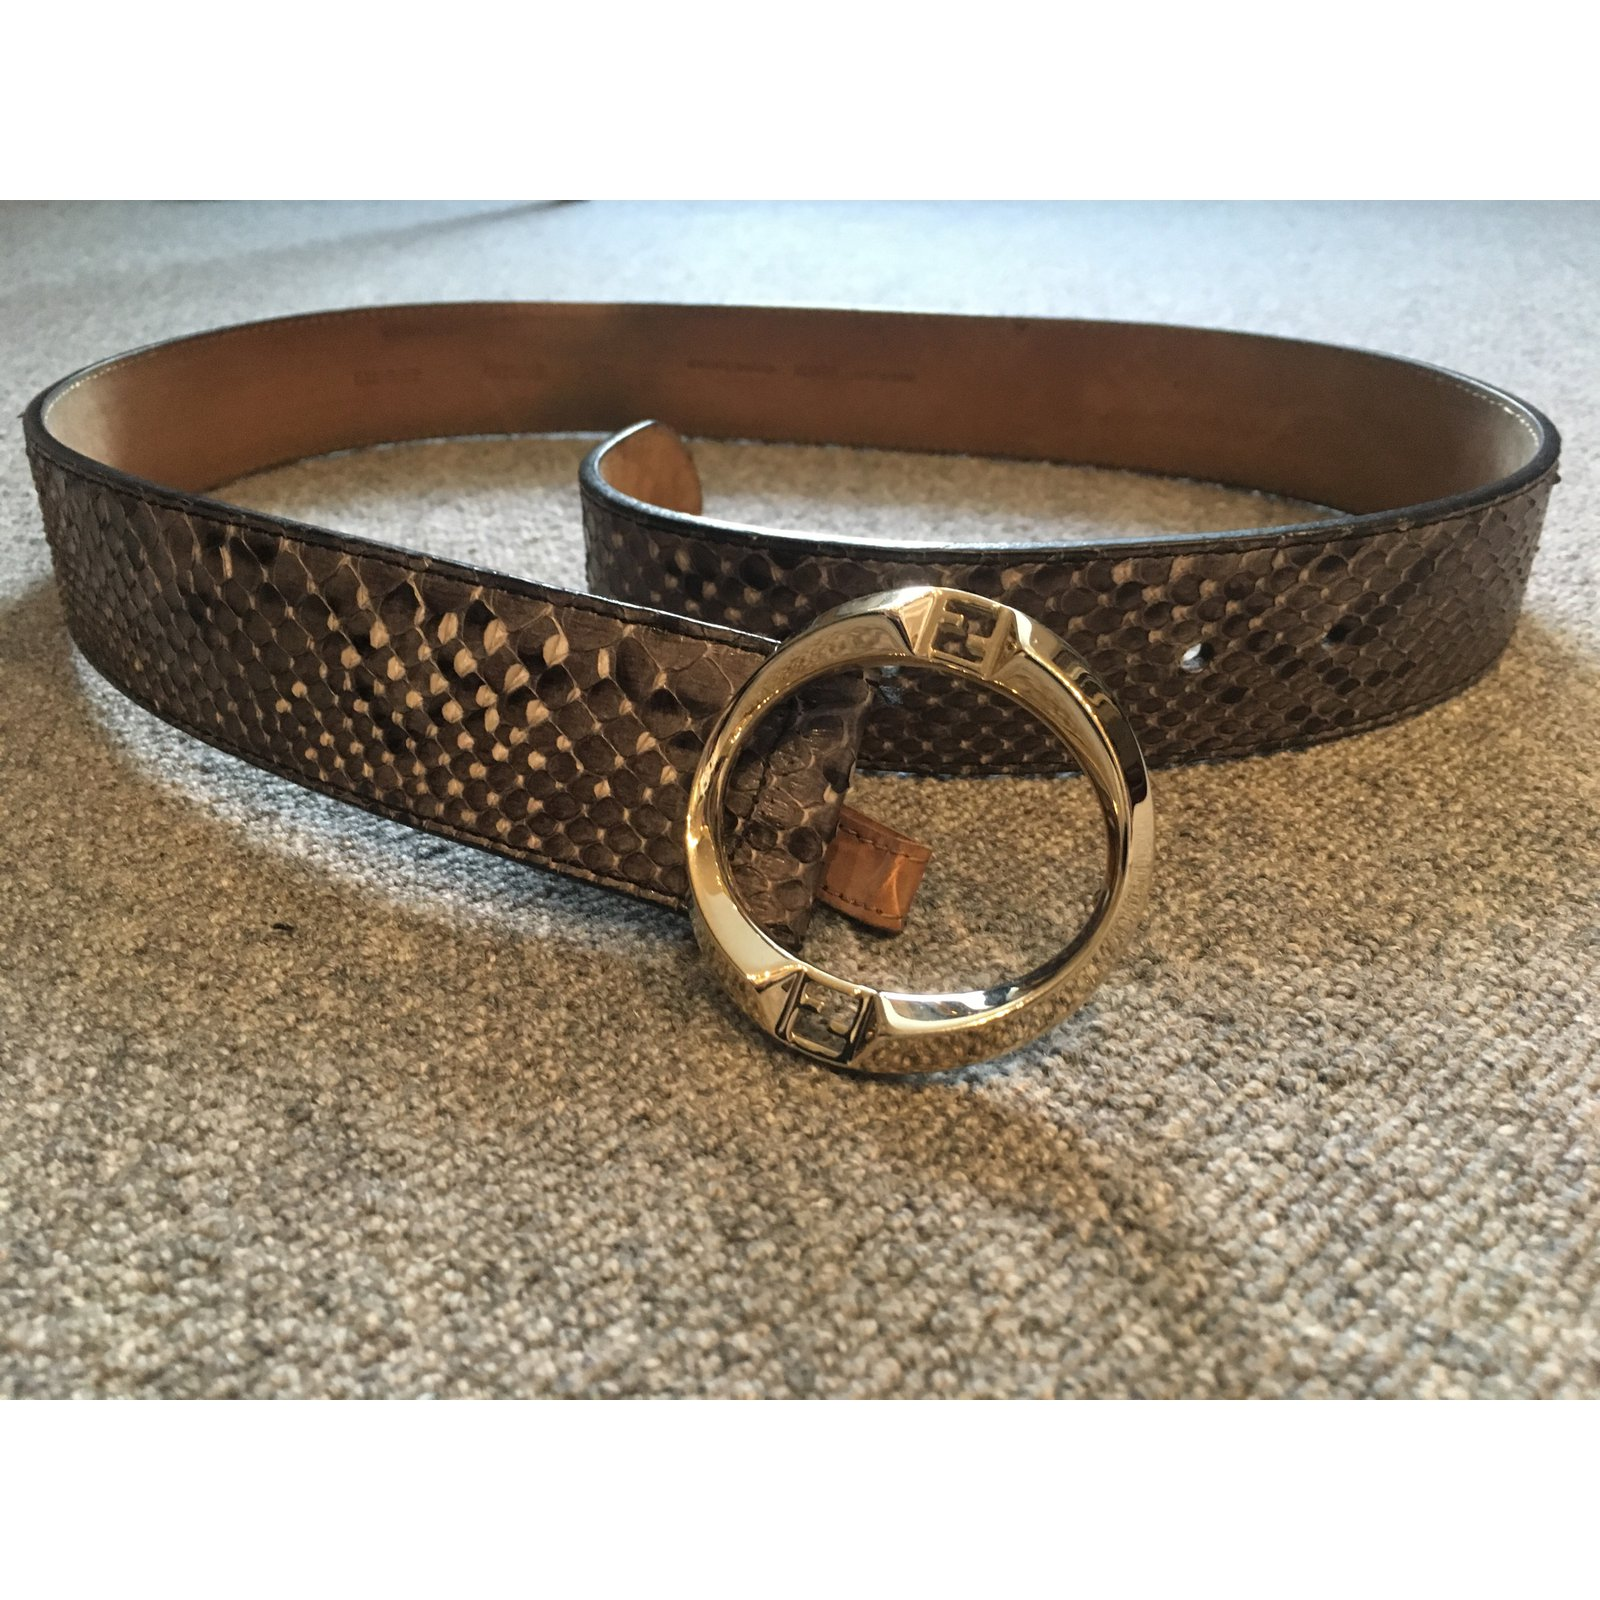 f635a2b6 get fendi belt gold 2017 72fdc b0c54